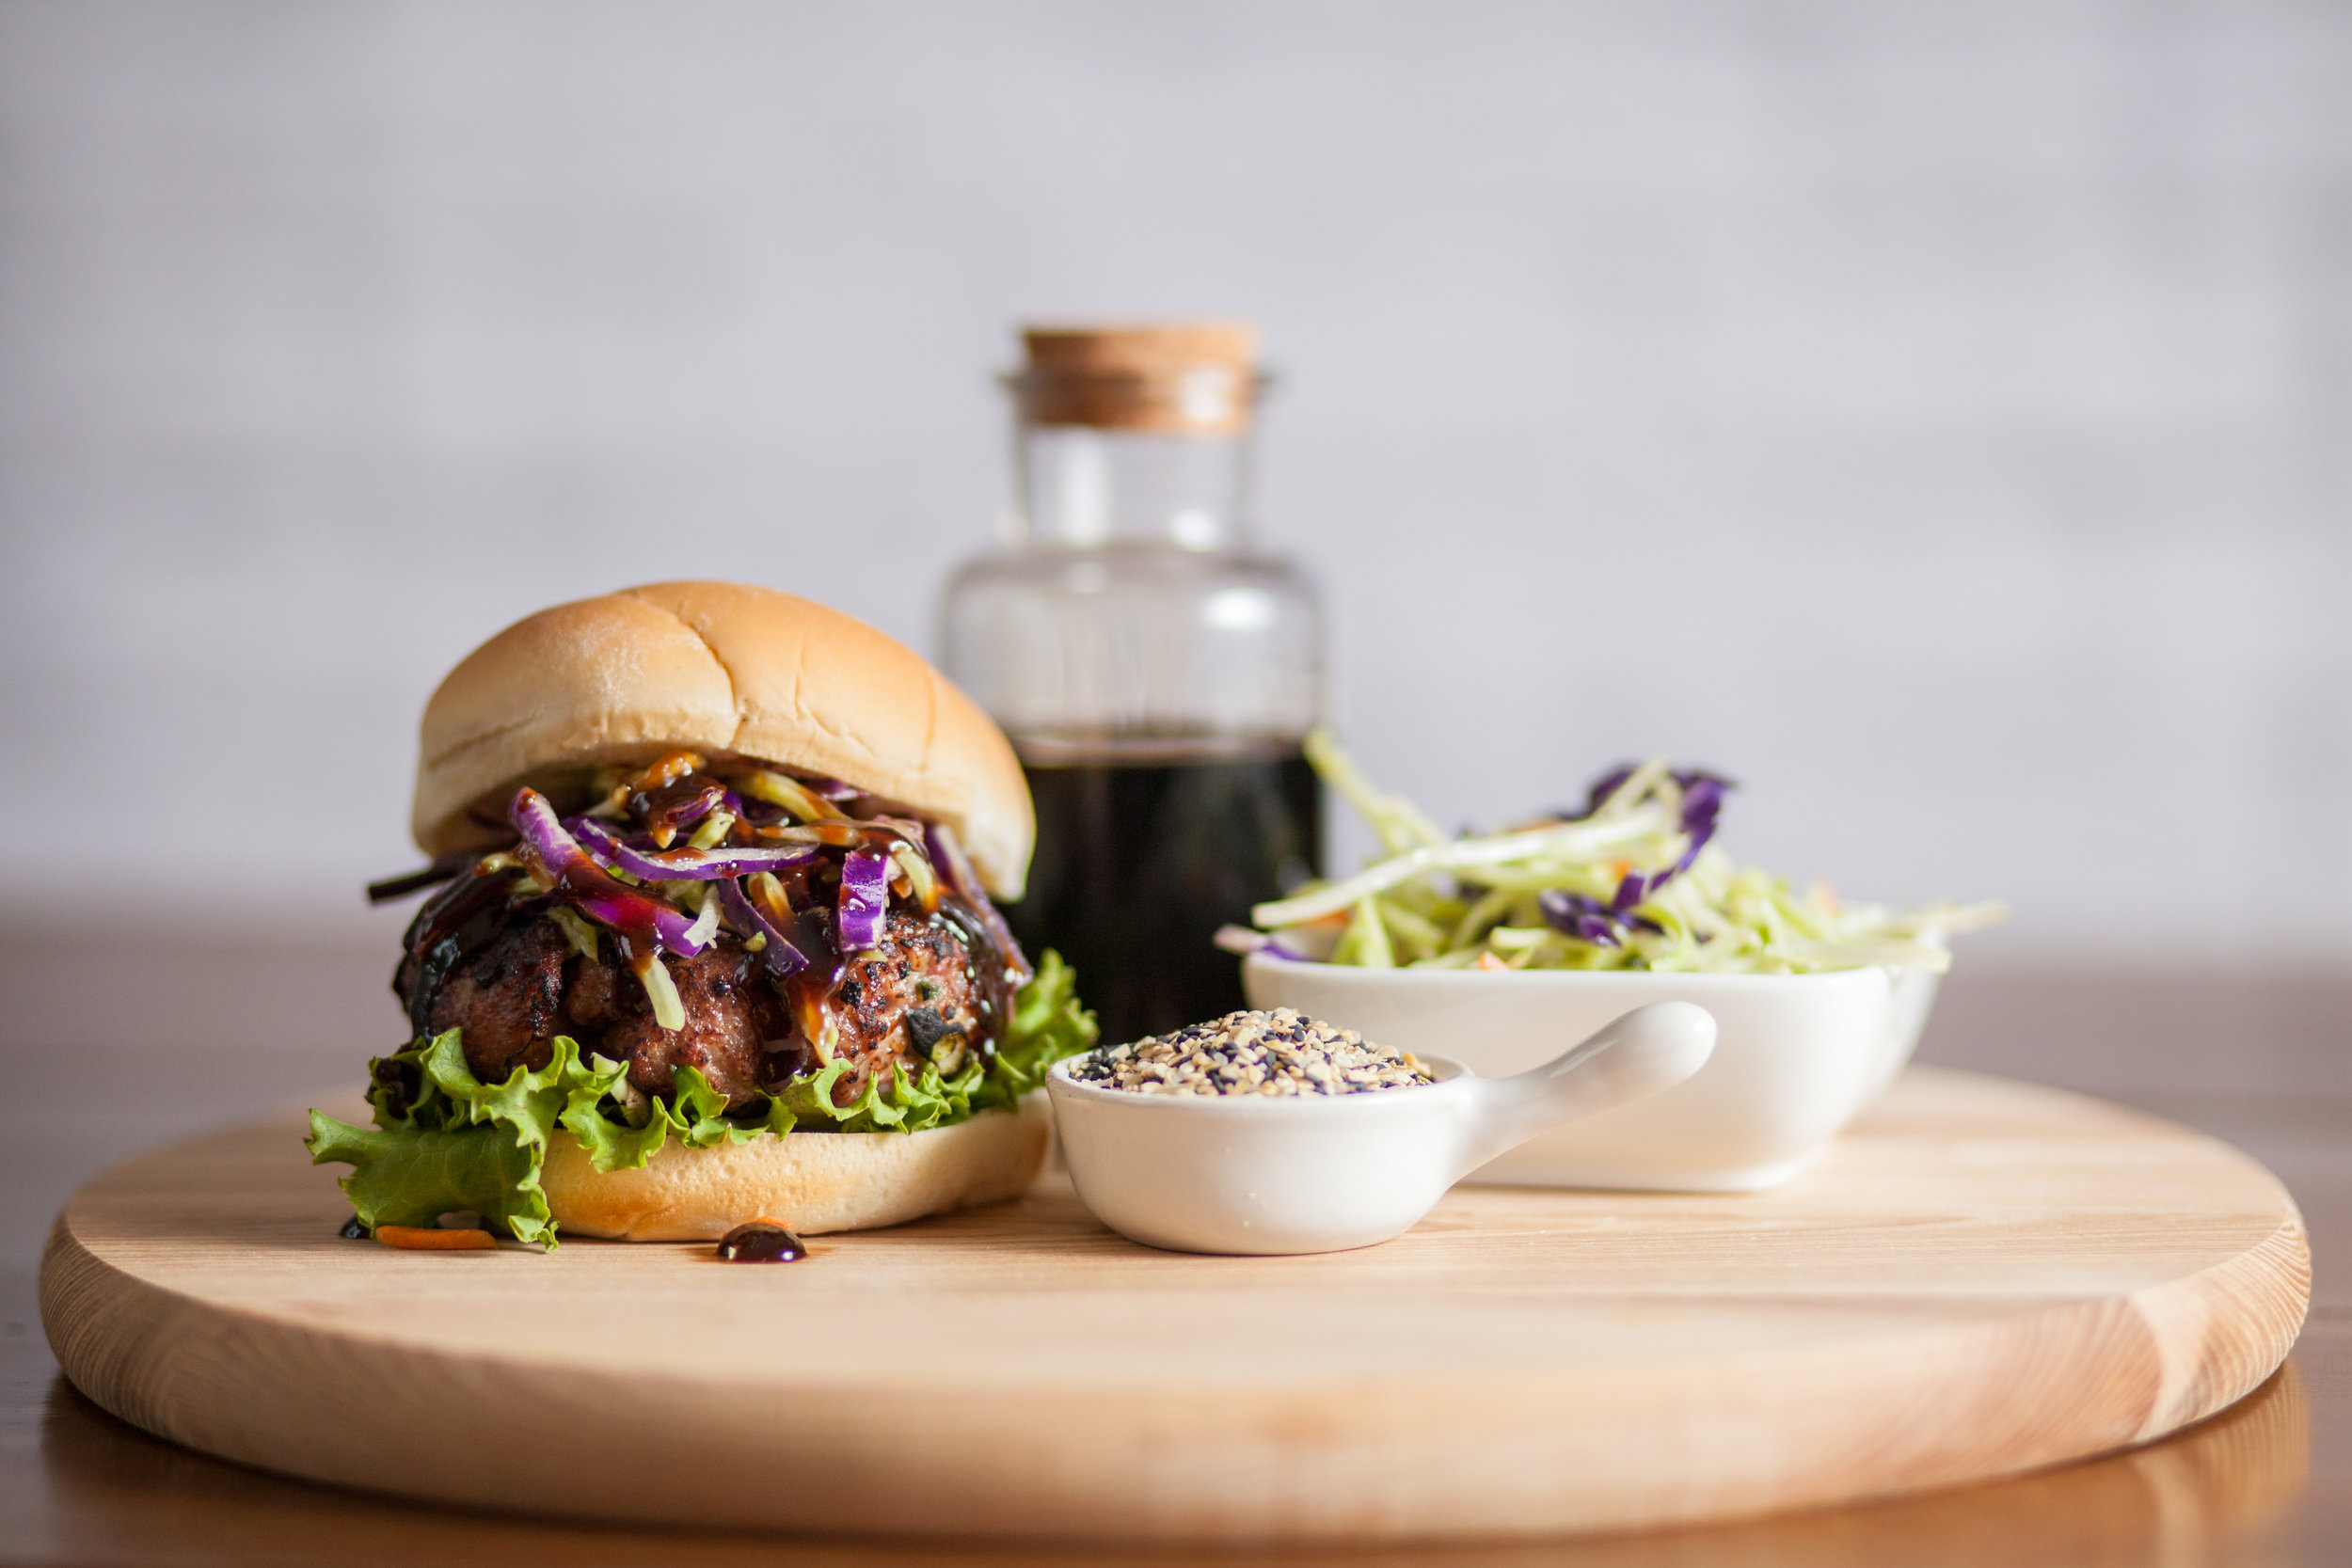 Asian-Style Pork Burger - Another great alternative to beef. The Asian-Style Pork Burger combines all of the flavor and freshness of Asian cuisines in a new way